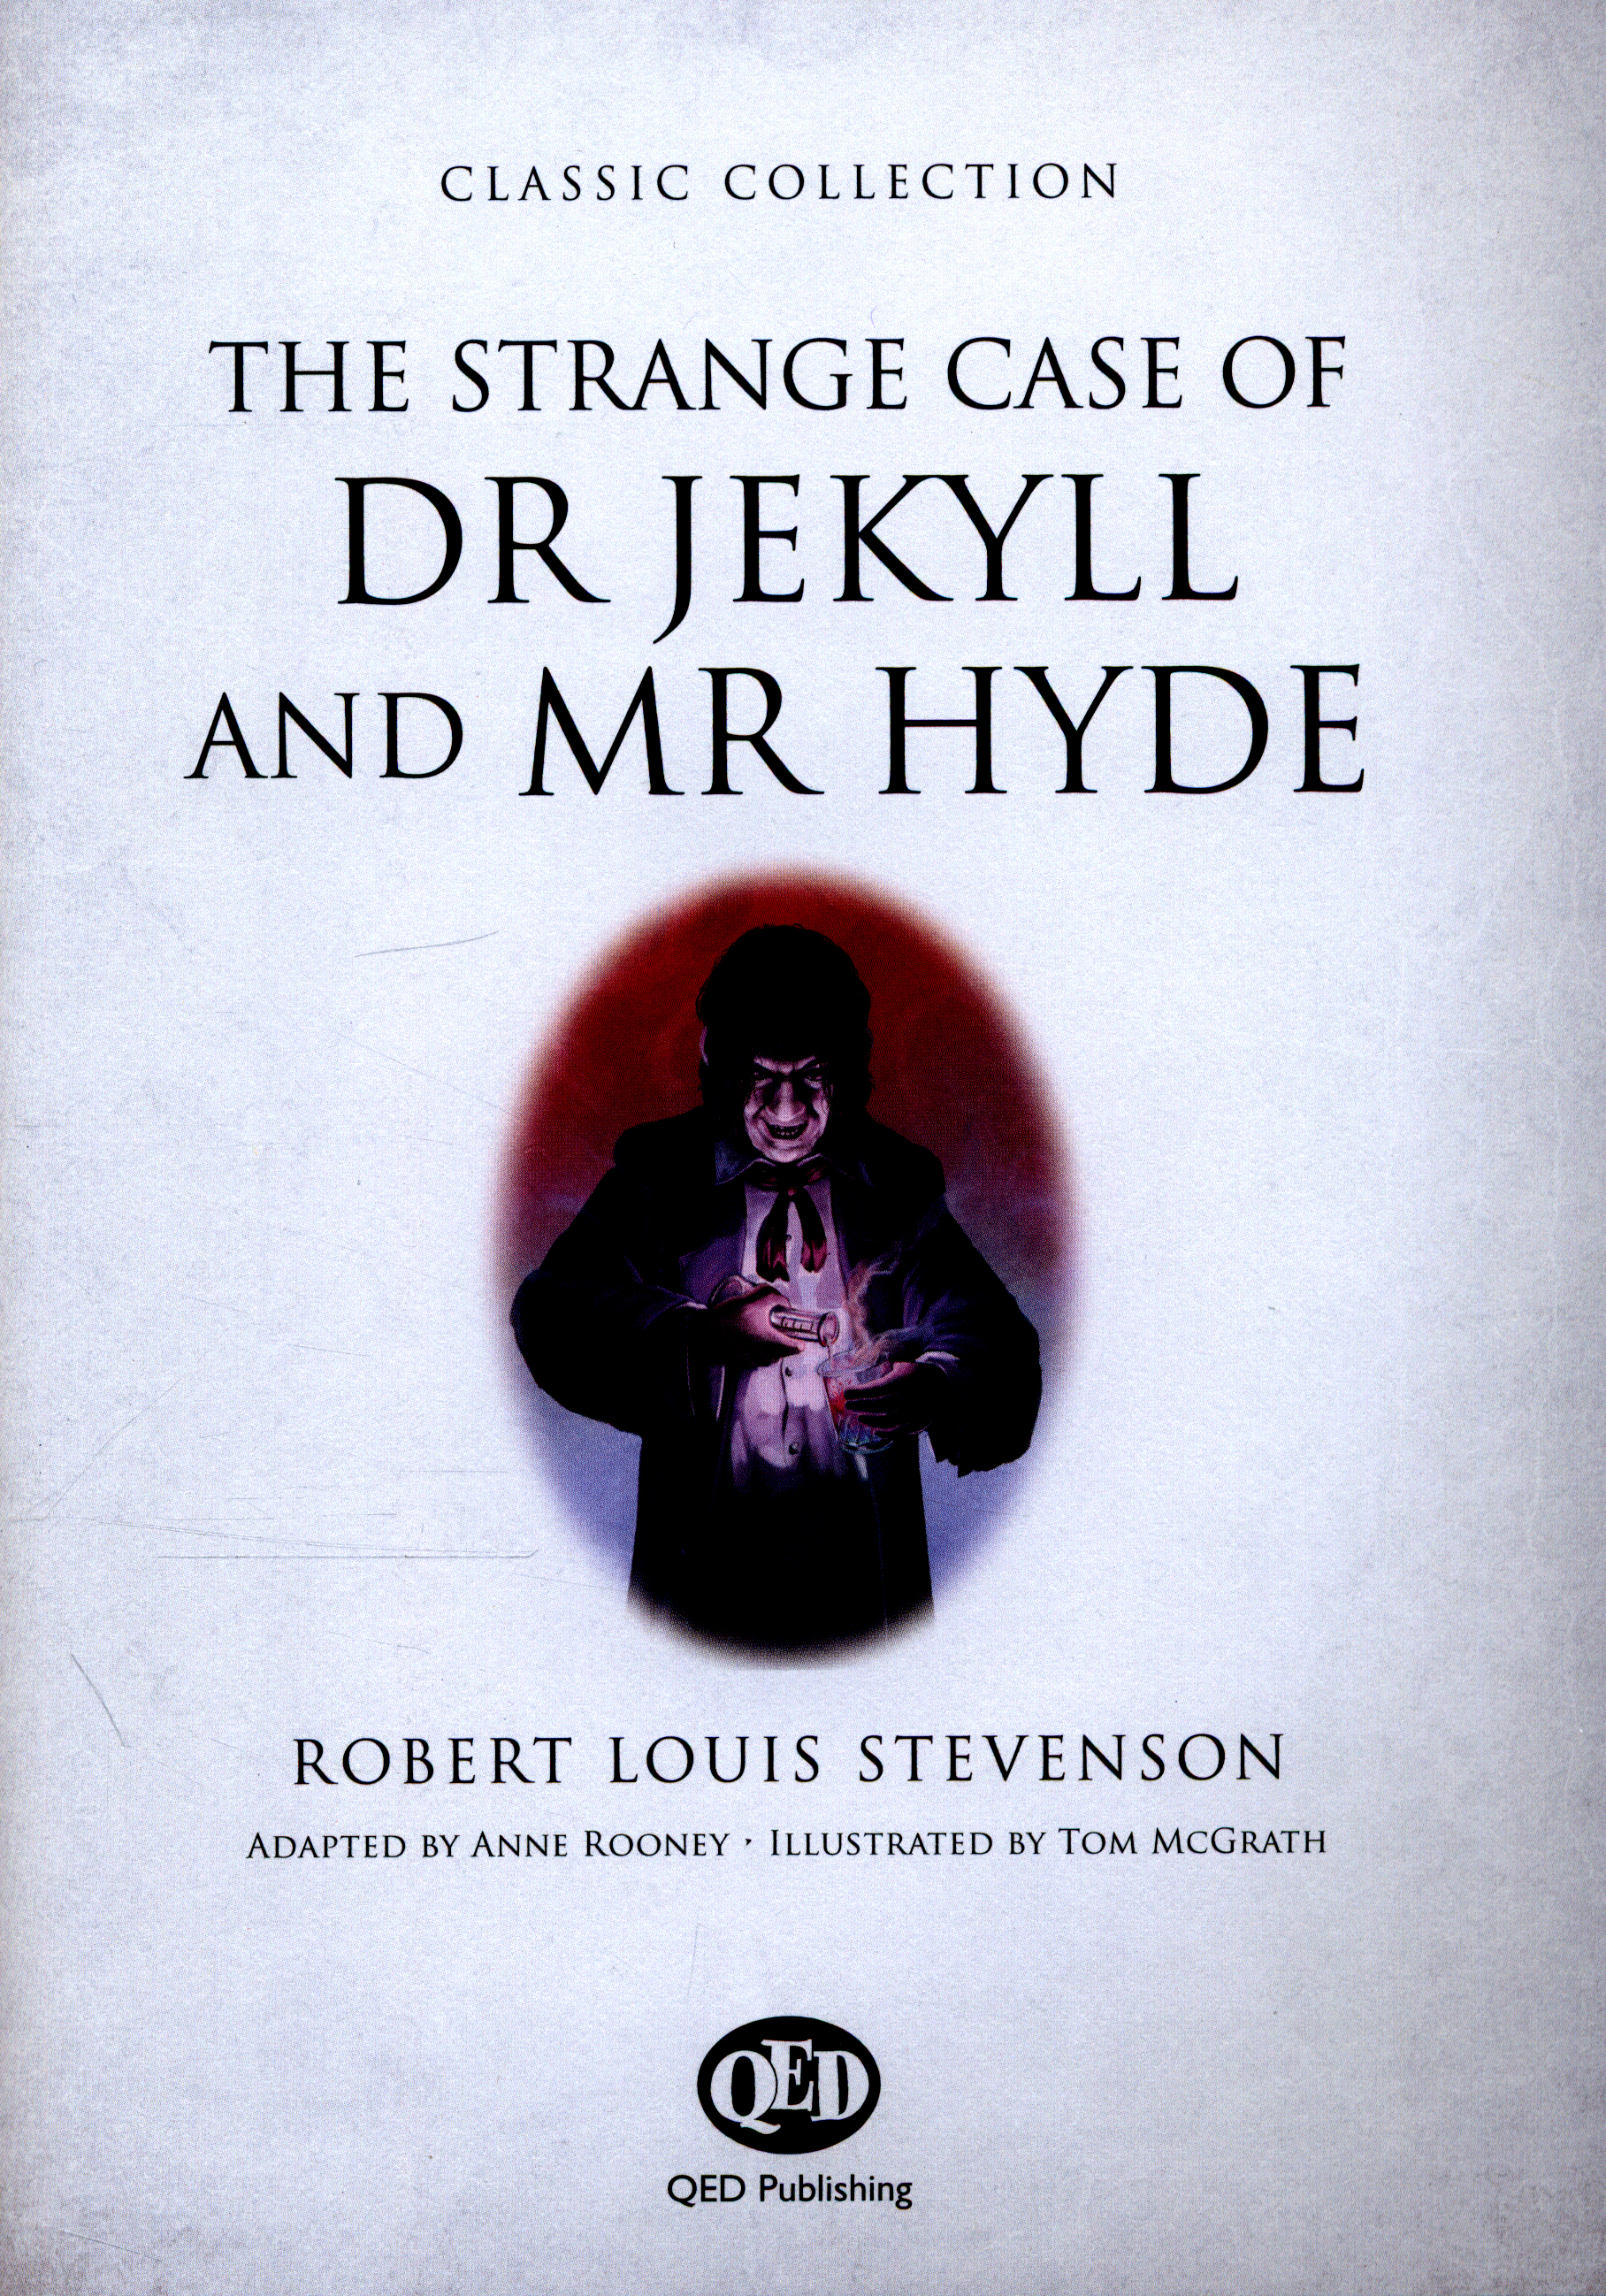 "schizophrenia and the strange case of dr jekyll and mr hyde The strange case of dr jekyll and mr hyde has 286,539 ratings and 9,042 reviews jeffrey said: ""it came about that edward hyde was so much smaller, sli."